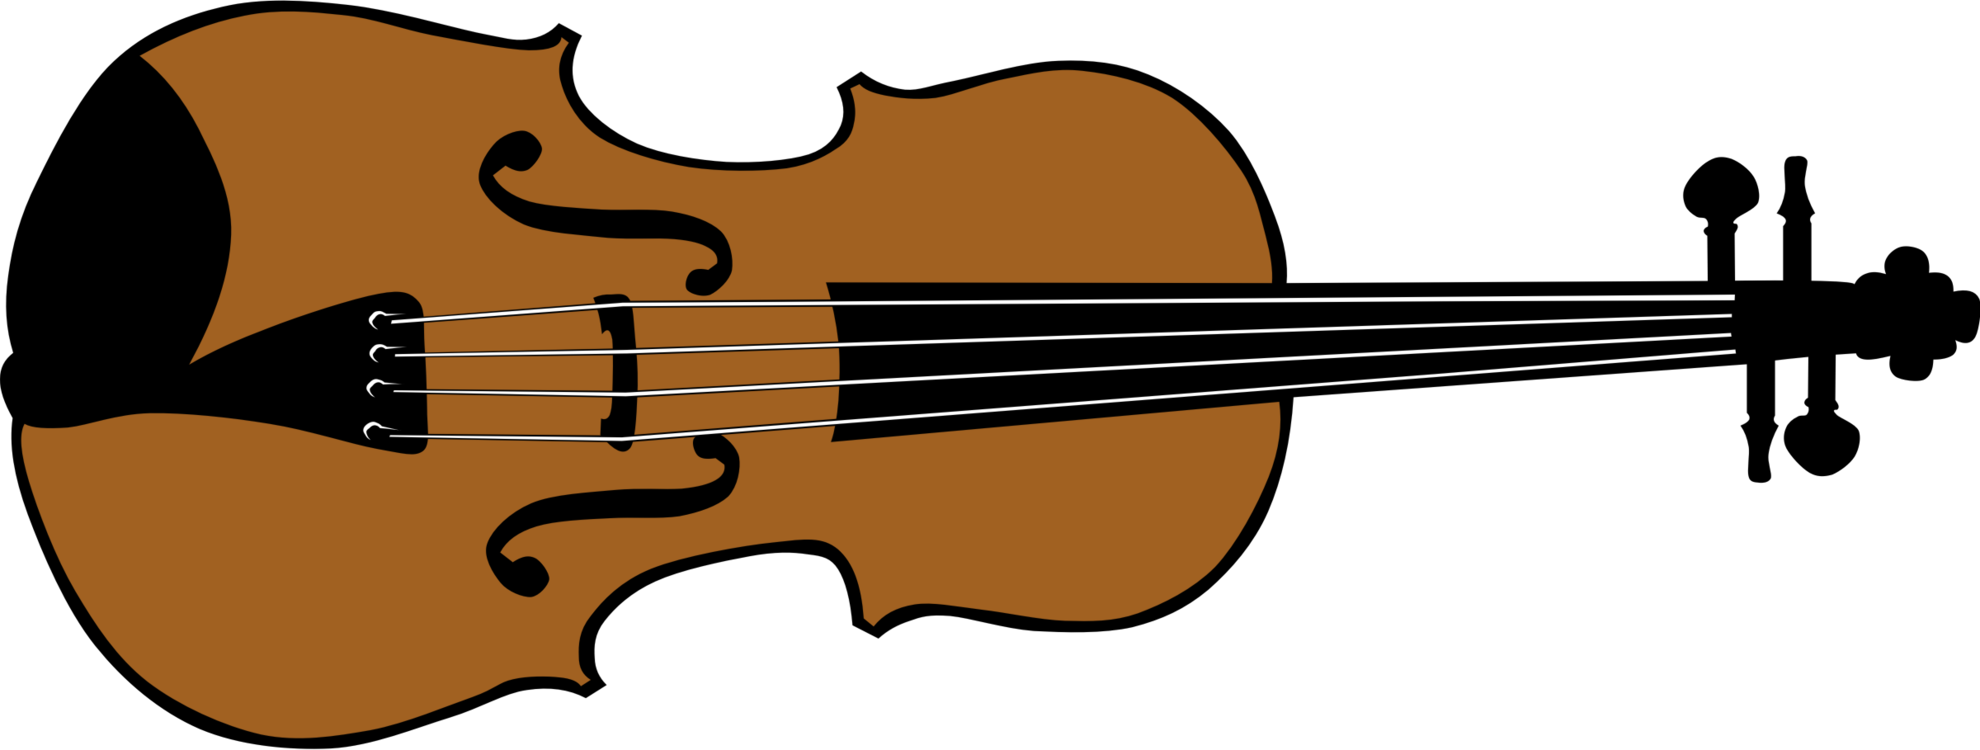 Guitar clipart violin. Music fiddle art bow